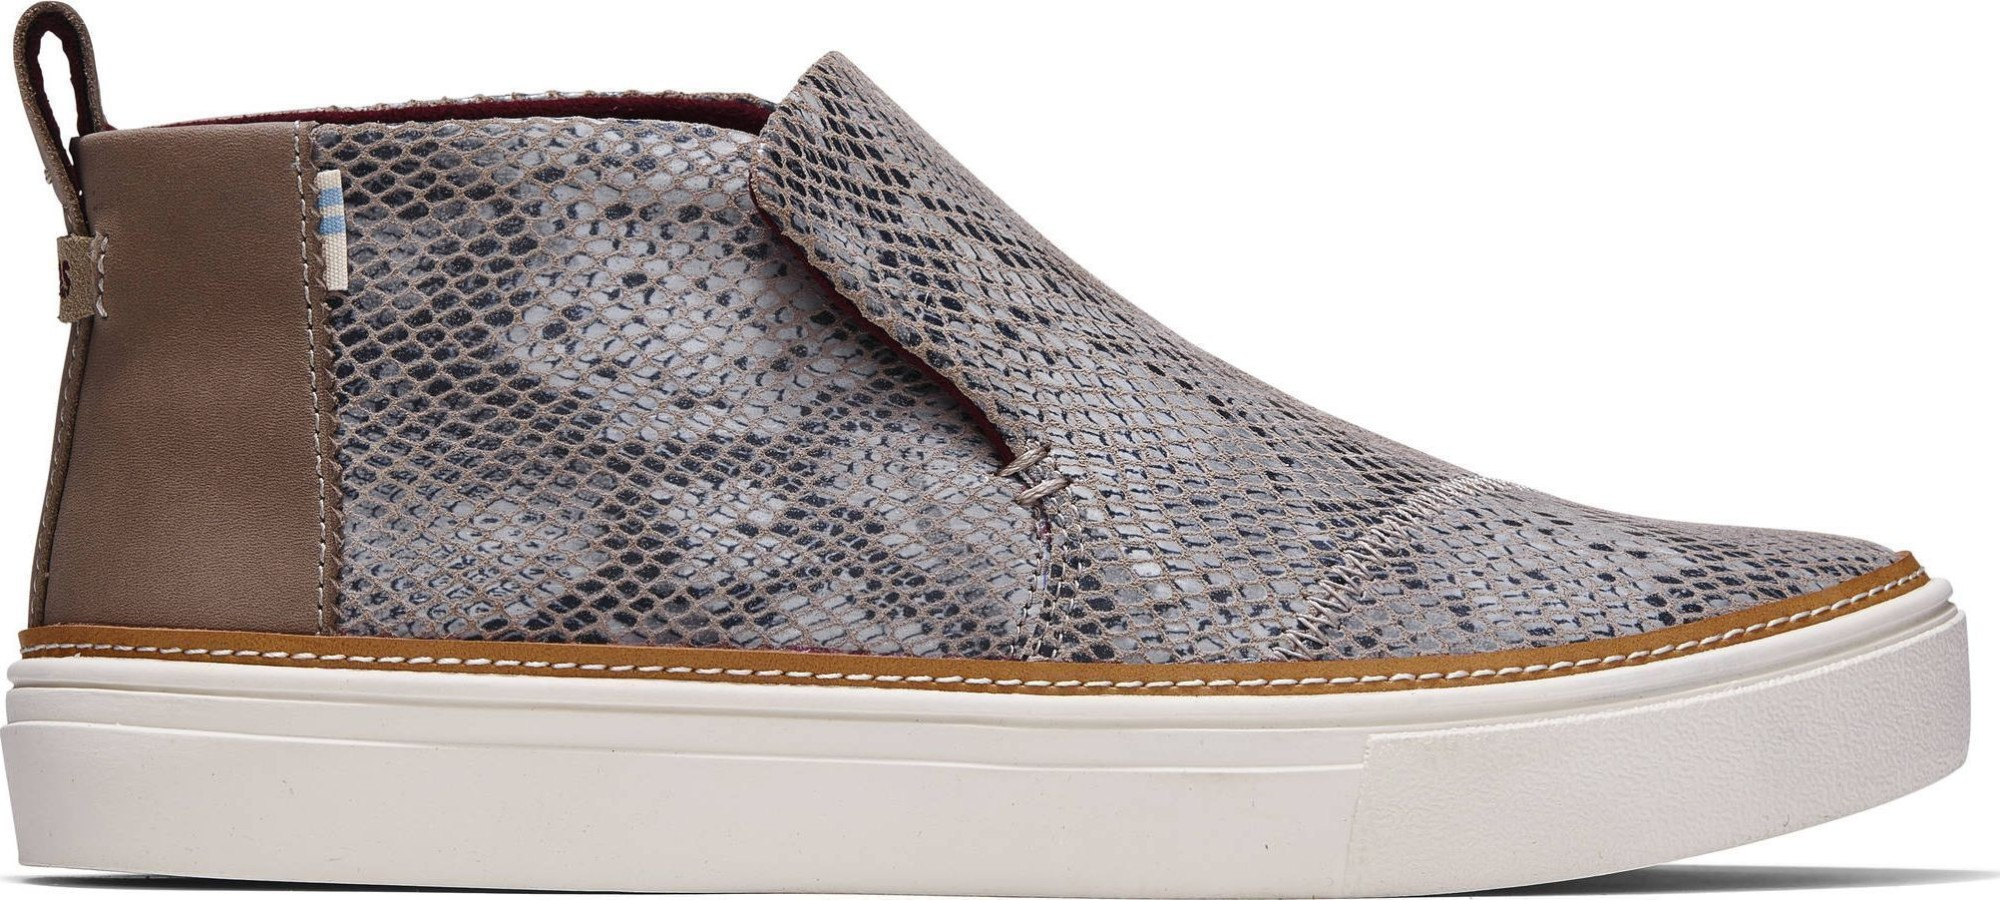 TOMS Snake Printed Suede Women's Paxton Slip-On Cobblestone 38